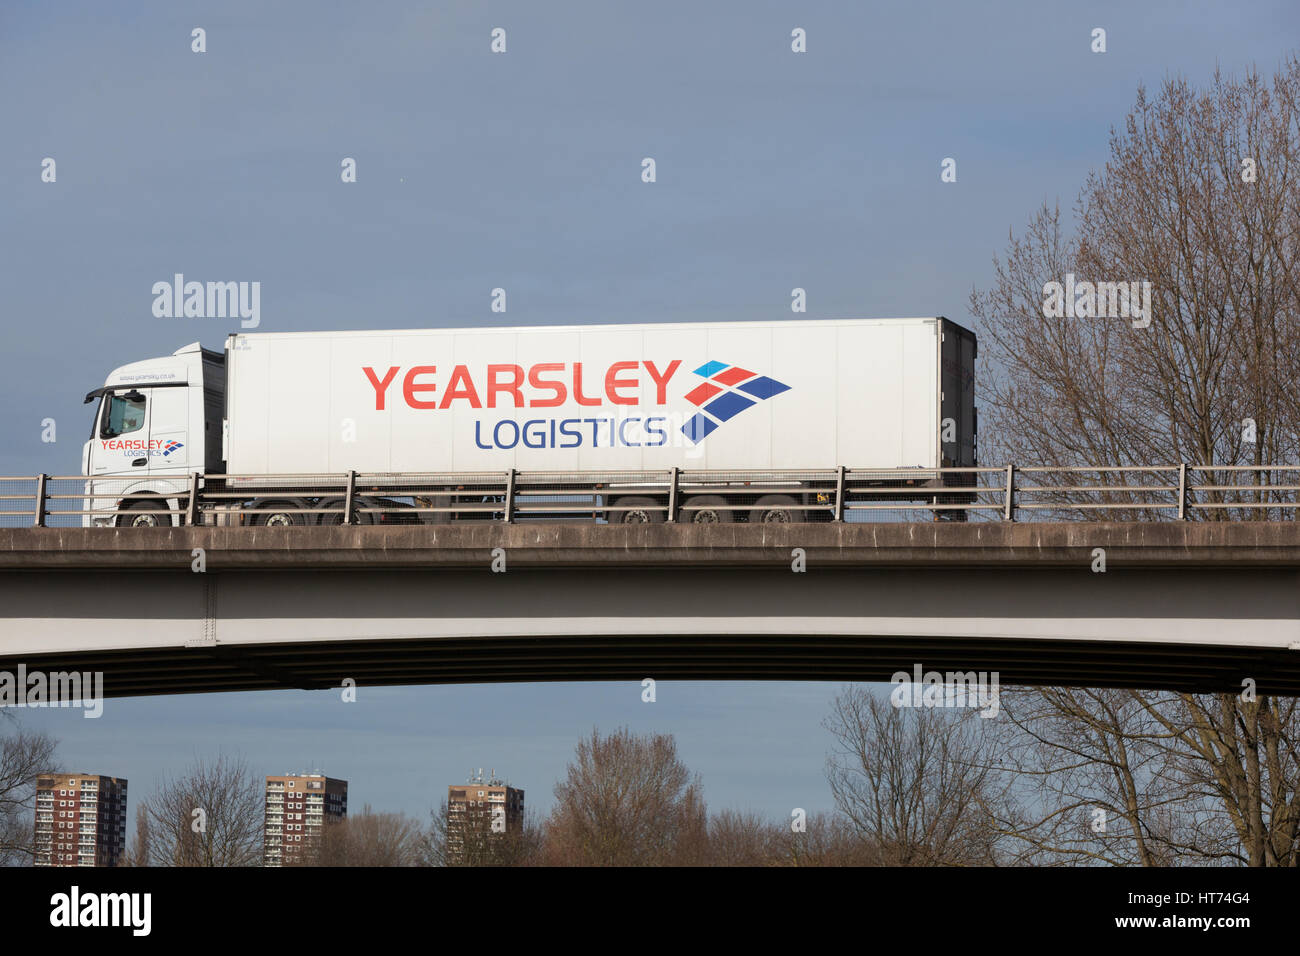 Yearsley Logistics lorry on the road in the Midlands - Stock Image